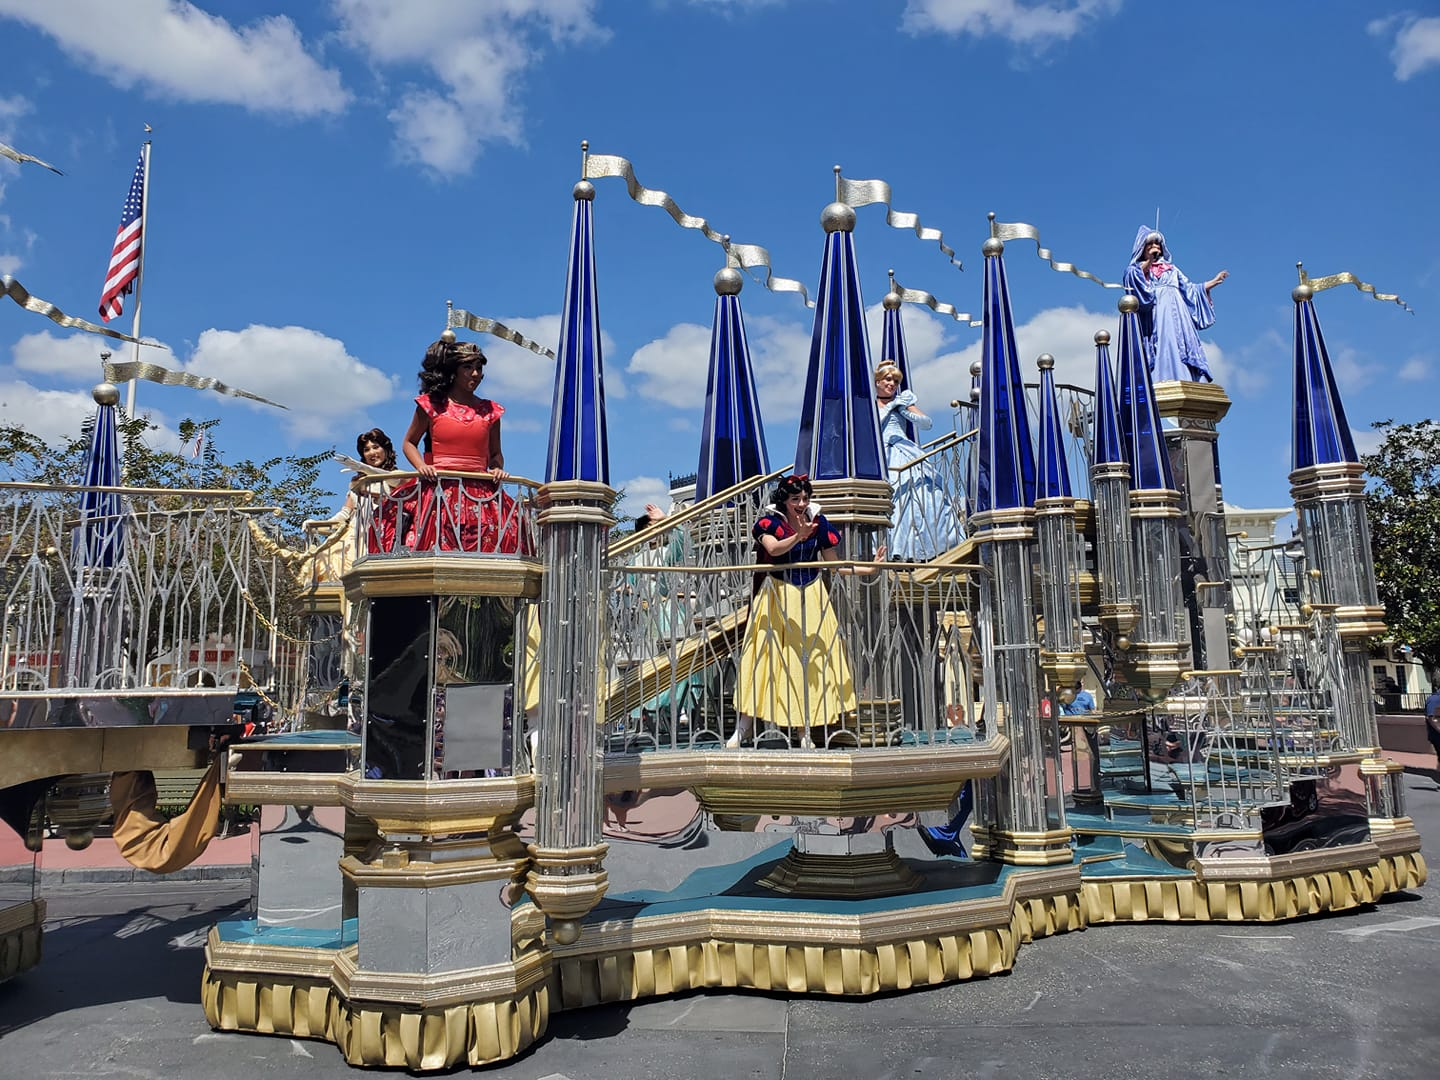 Pop up parade during Disney World's COVID changes